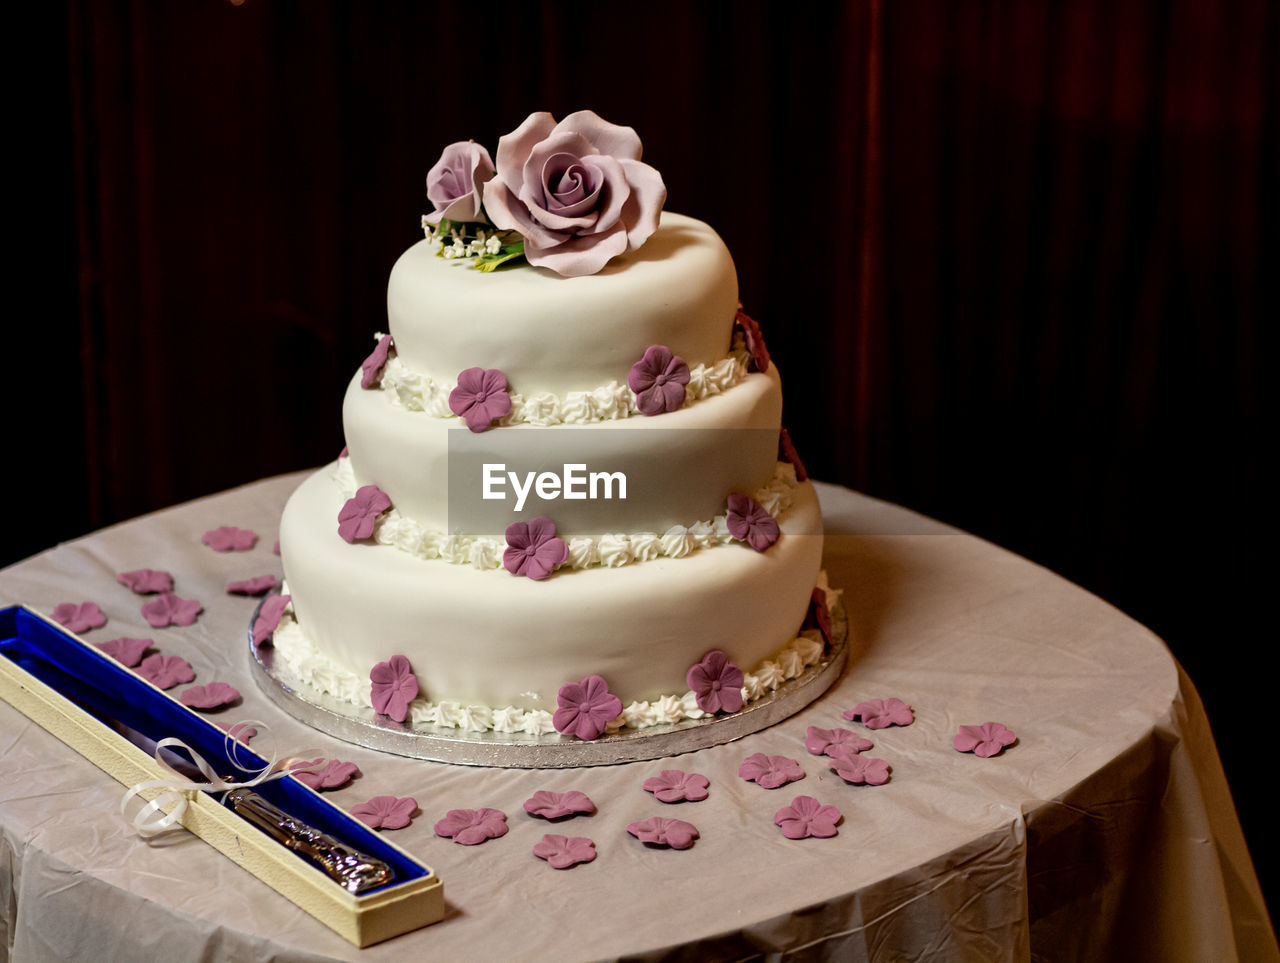 CLOSE-UP OF CAKE ON TABLE WITH BREAD